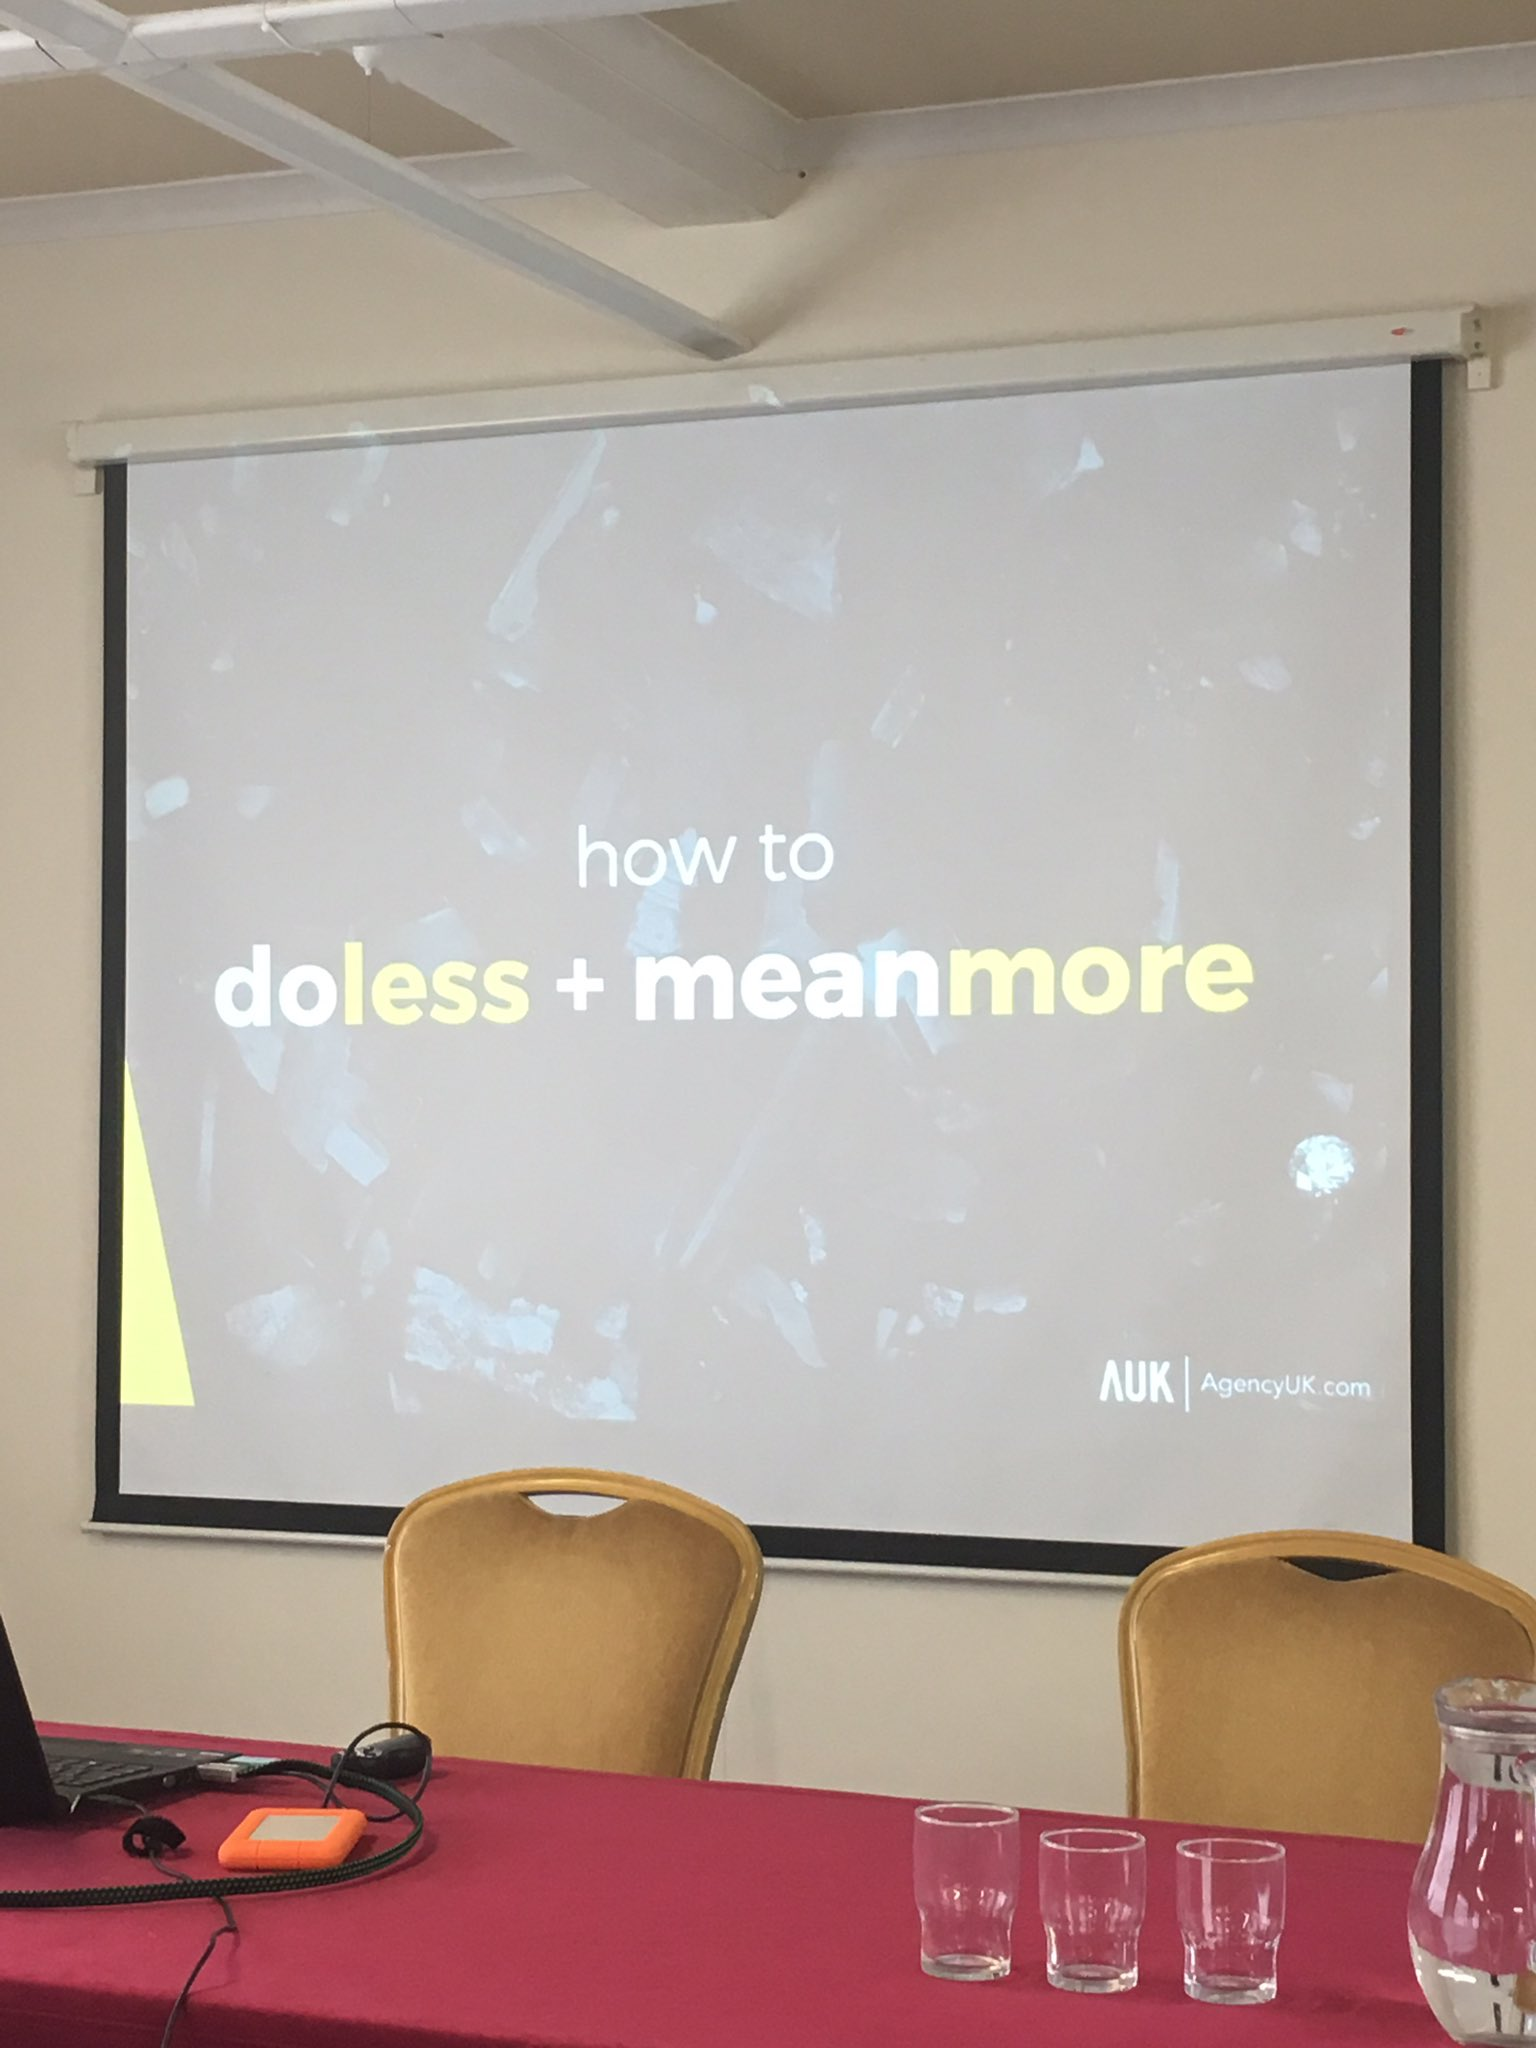 Next up: Ian McKee shows us how to do less and mean more on social media #OiConf https://t.co/Xw295sBFAU